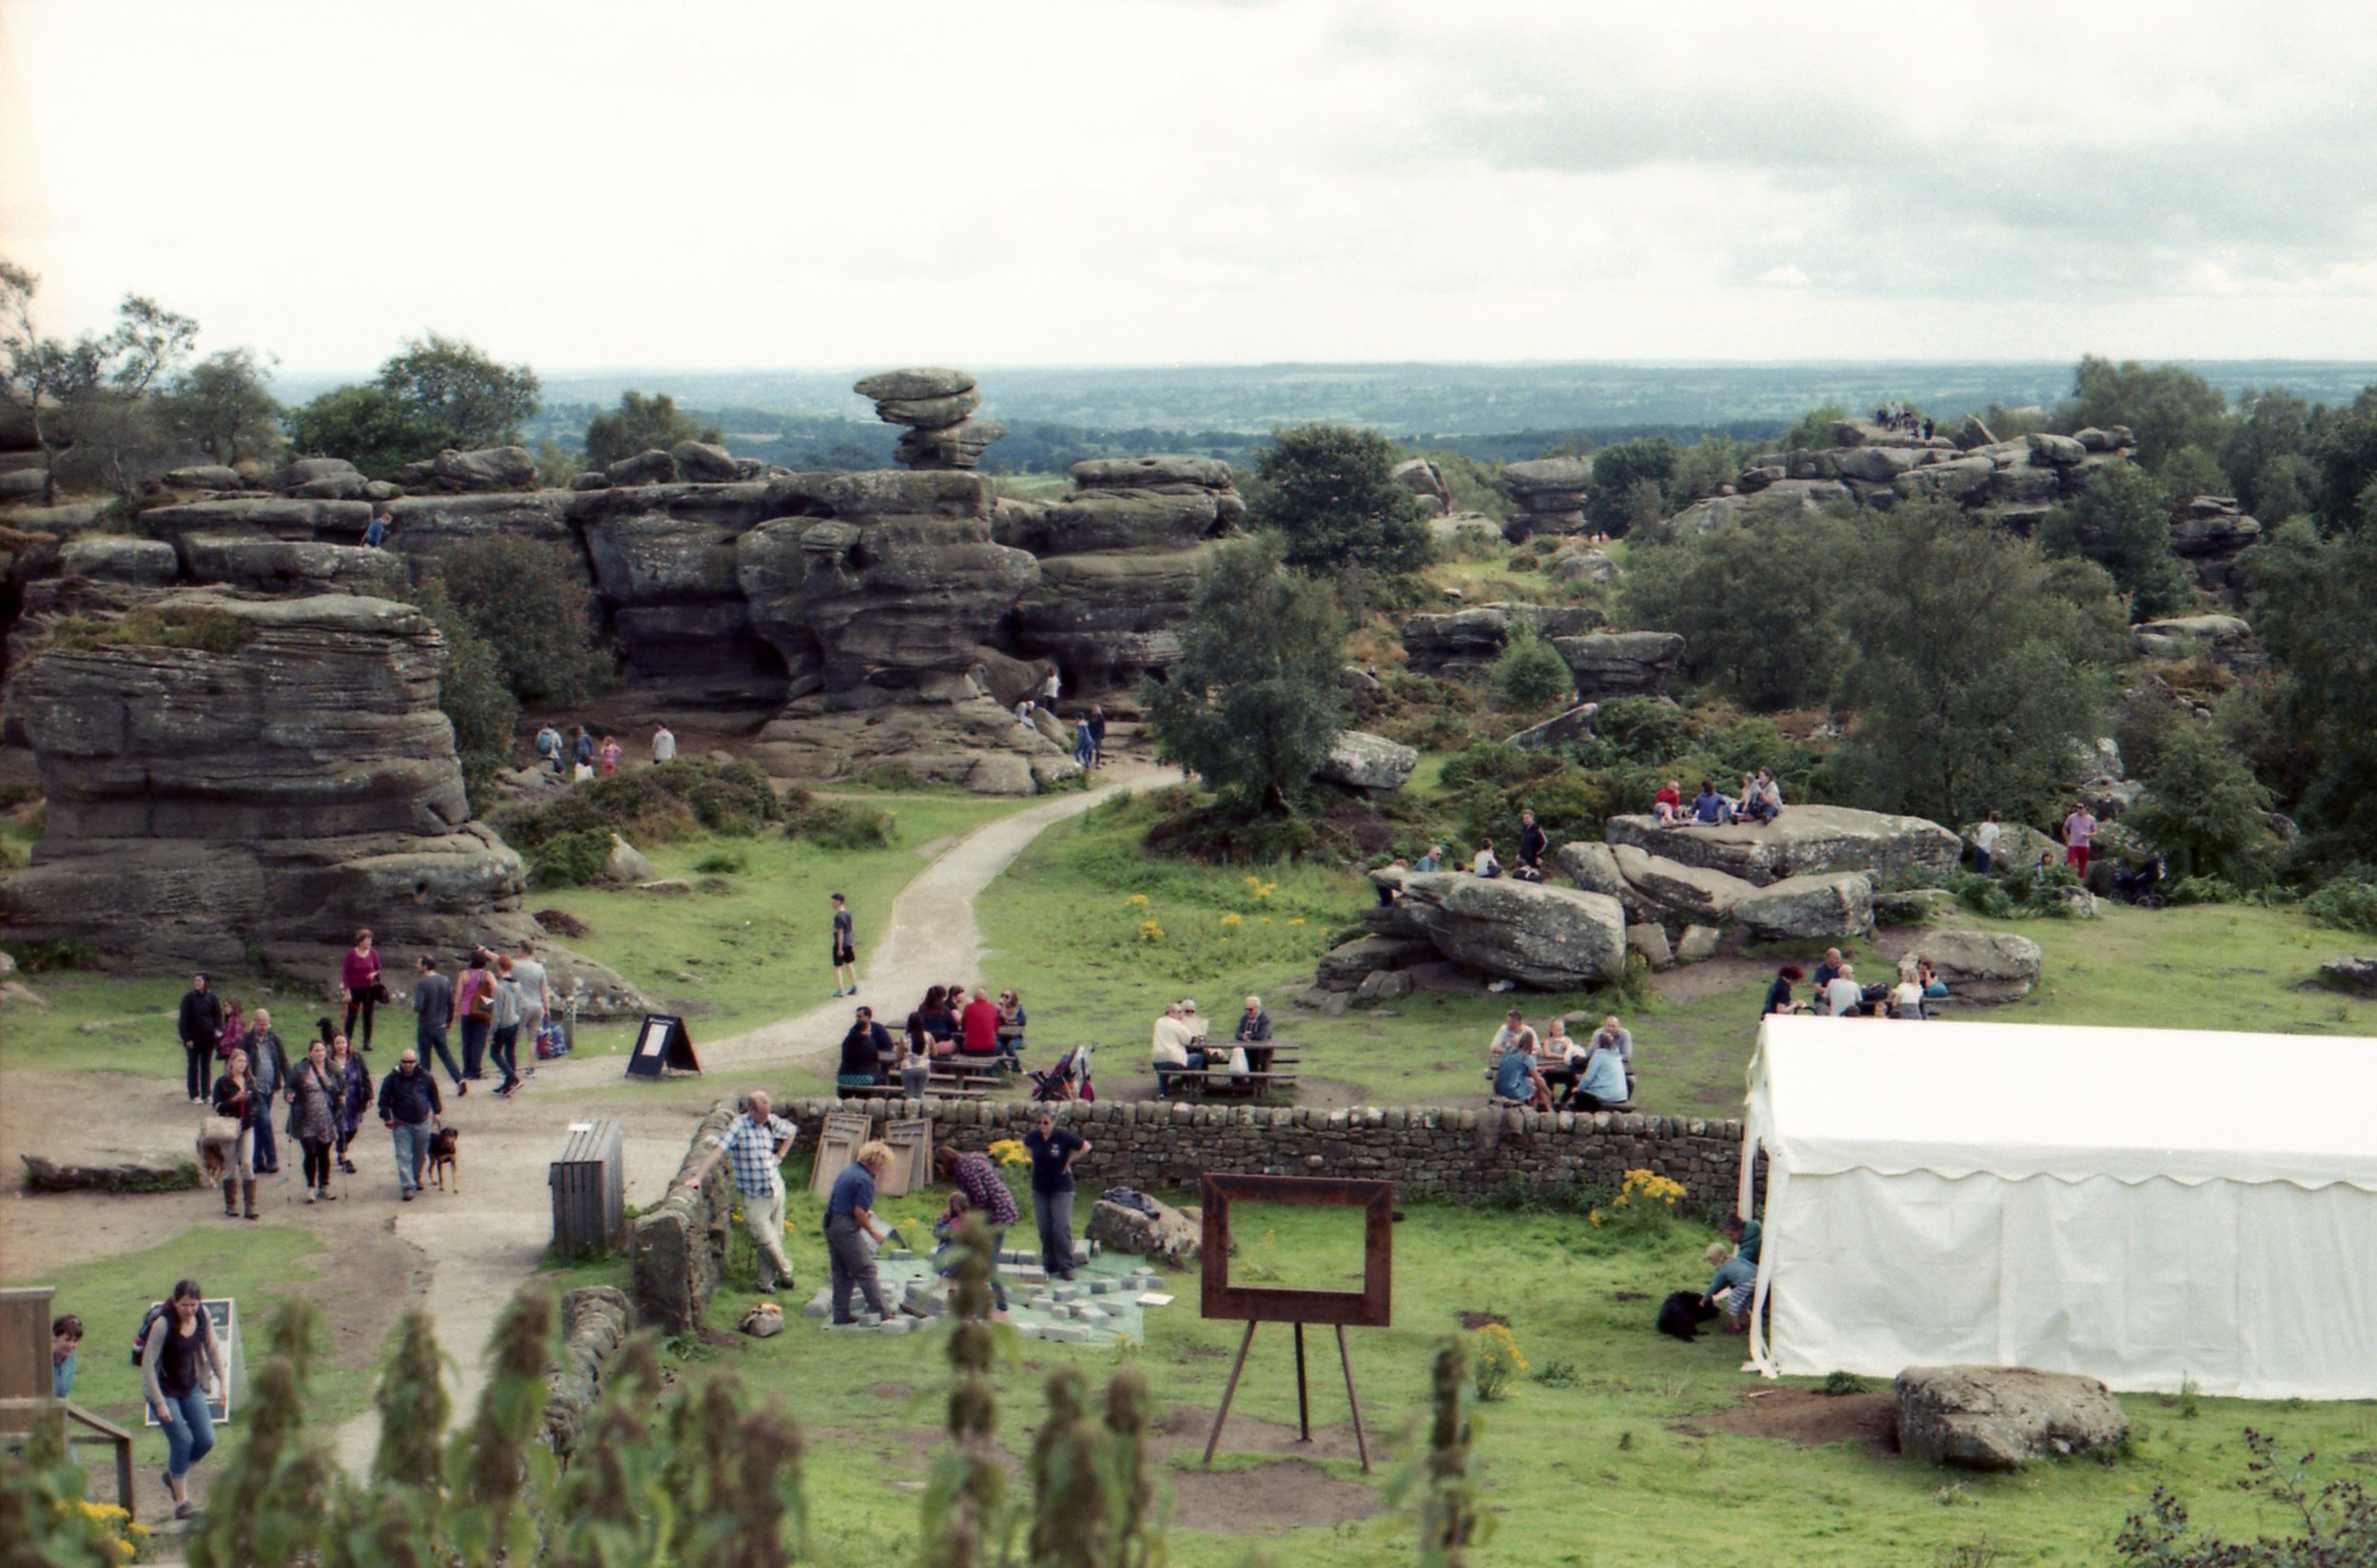 226/366 - We visited Brimham Rocks with Thomas's parents and I have to admit that I was as blown away by them as I was the first time we visited, such an amazing thing to have on yur doorstep!